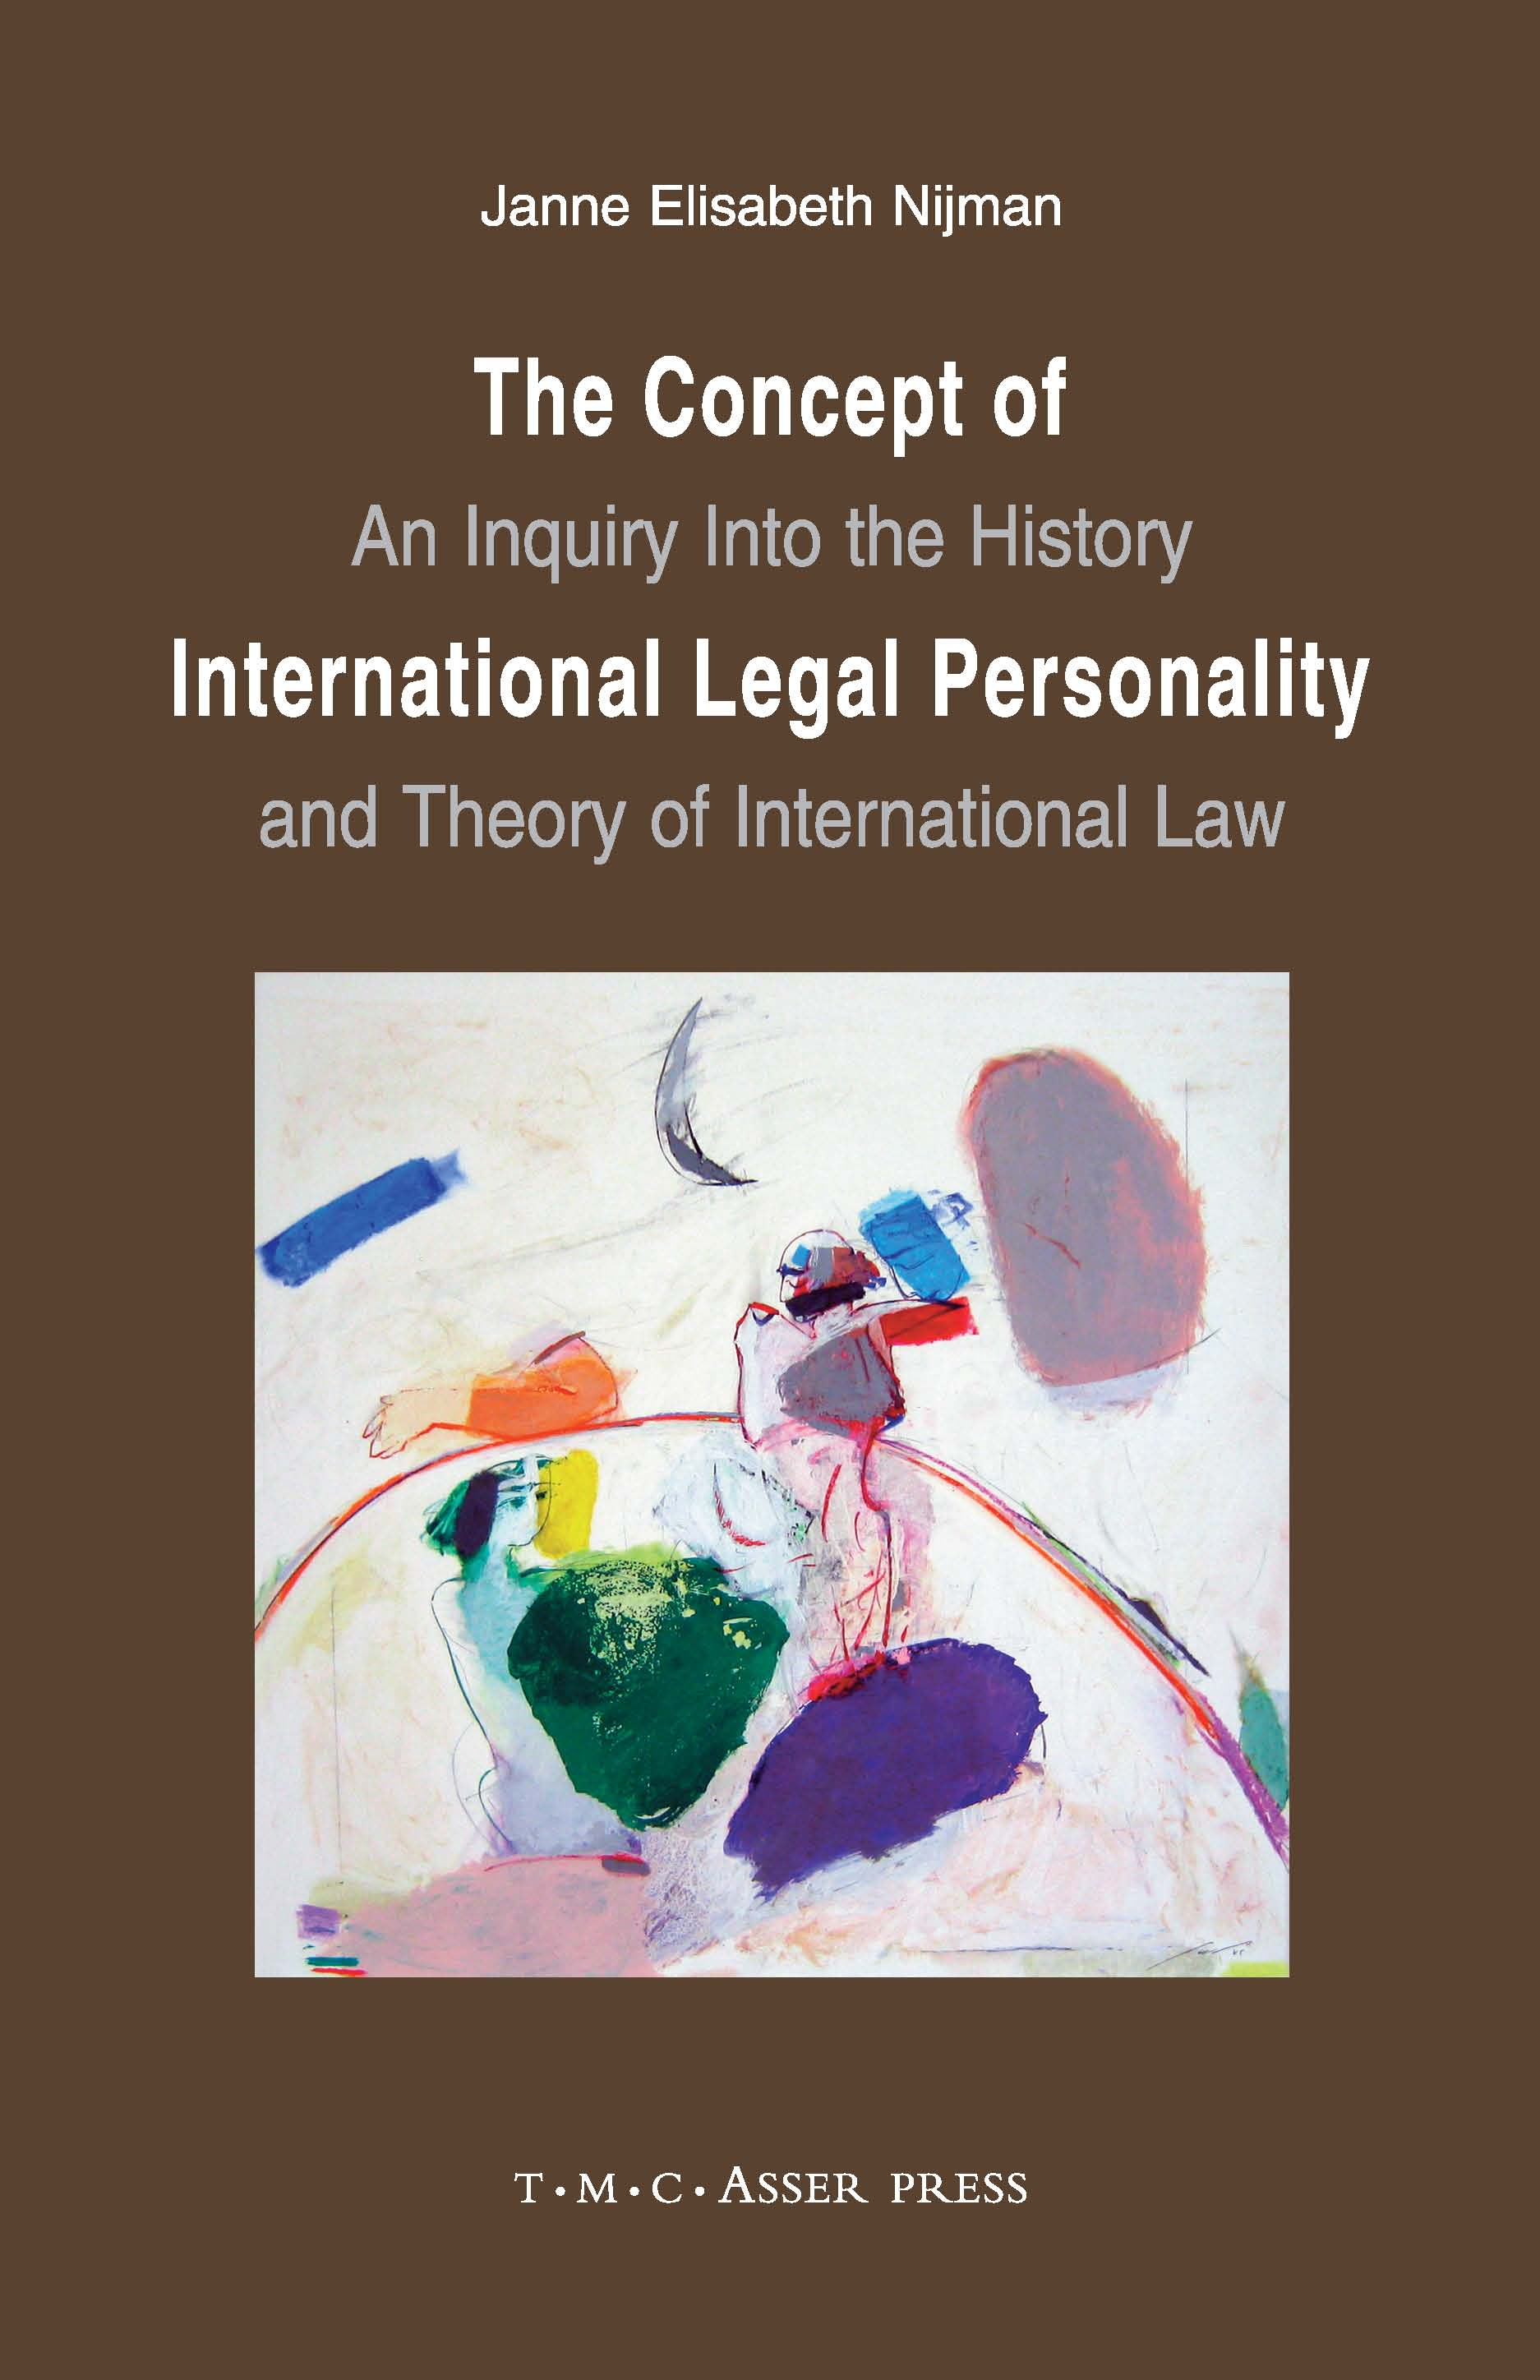 The Concept of International Legal Personality - An Inquiry into the History and Theory of International Law